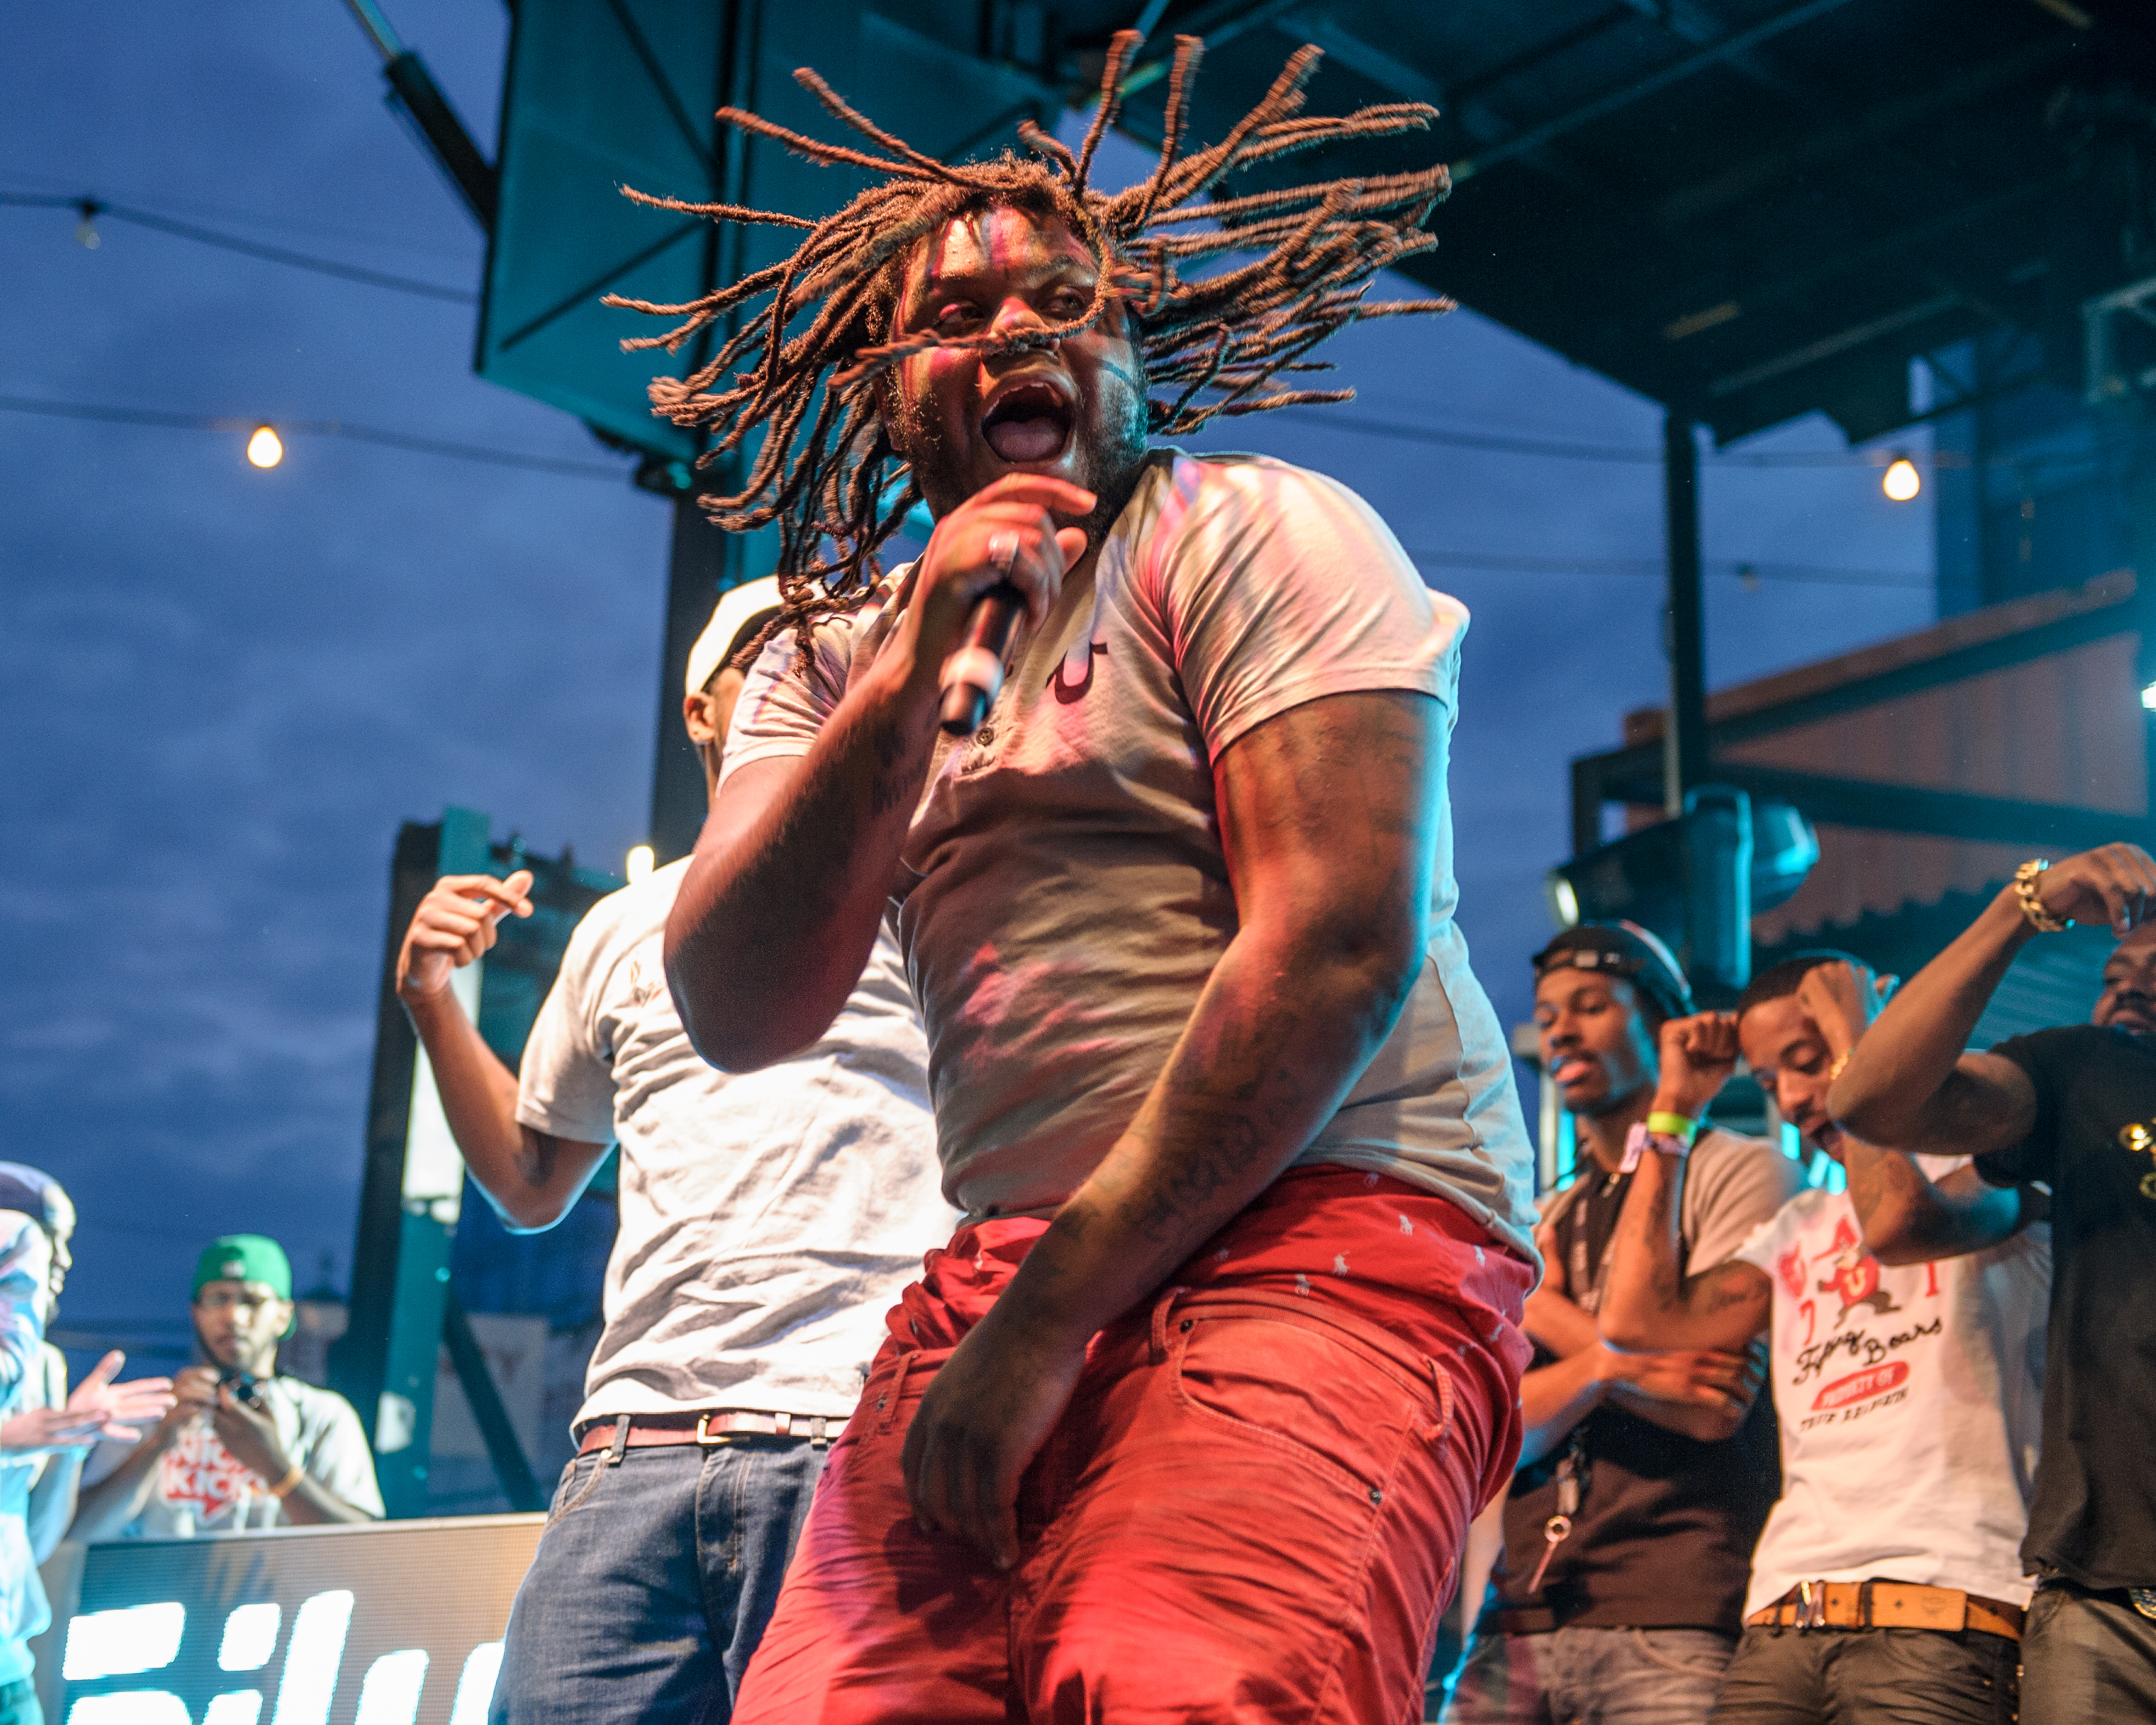 Fat Trel Performs at the 2013 Trillectro Festival in Washington, D.C.